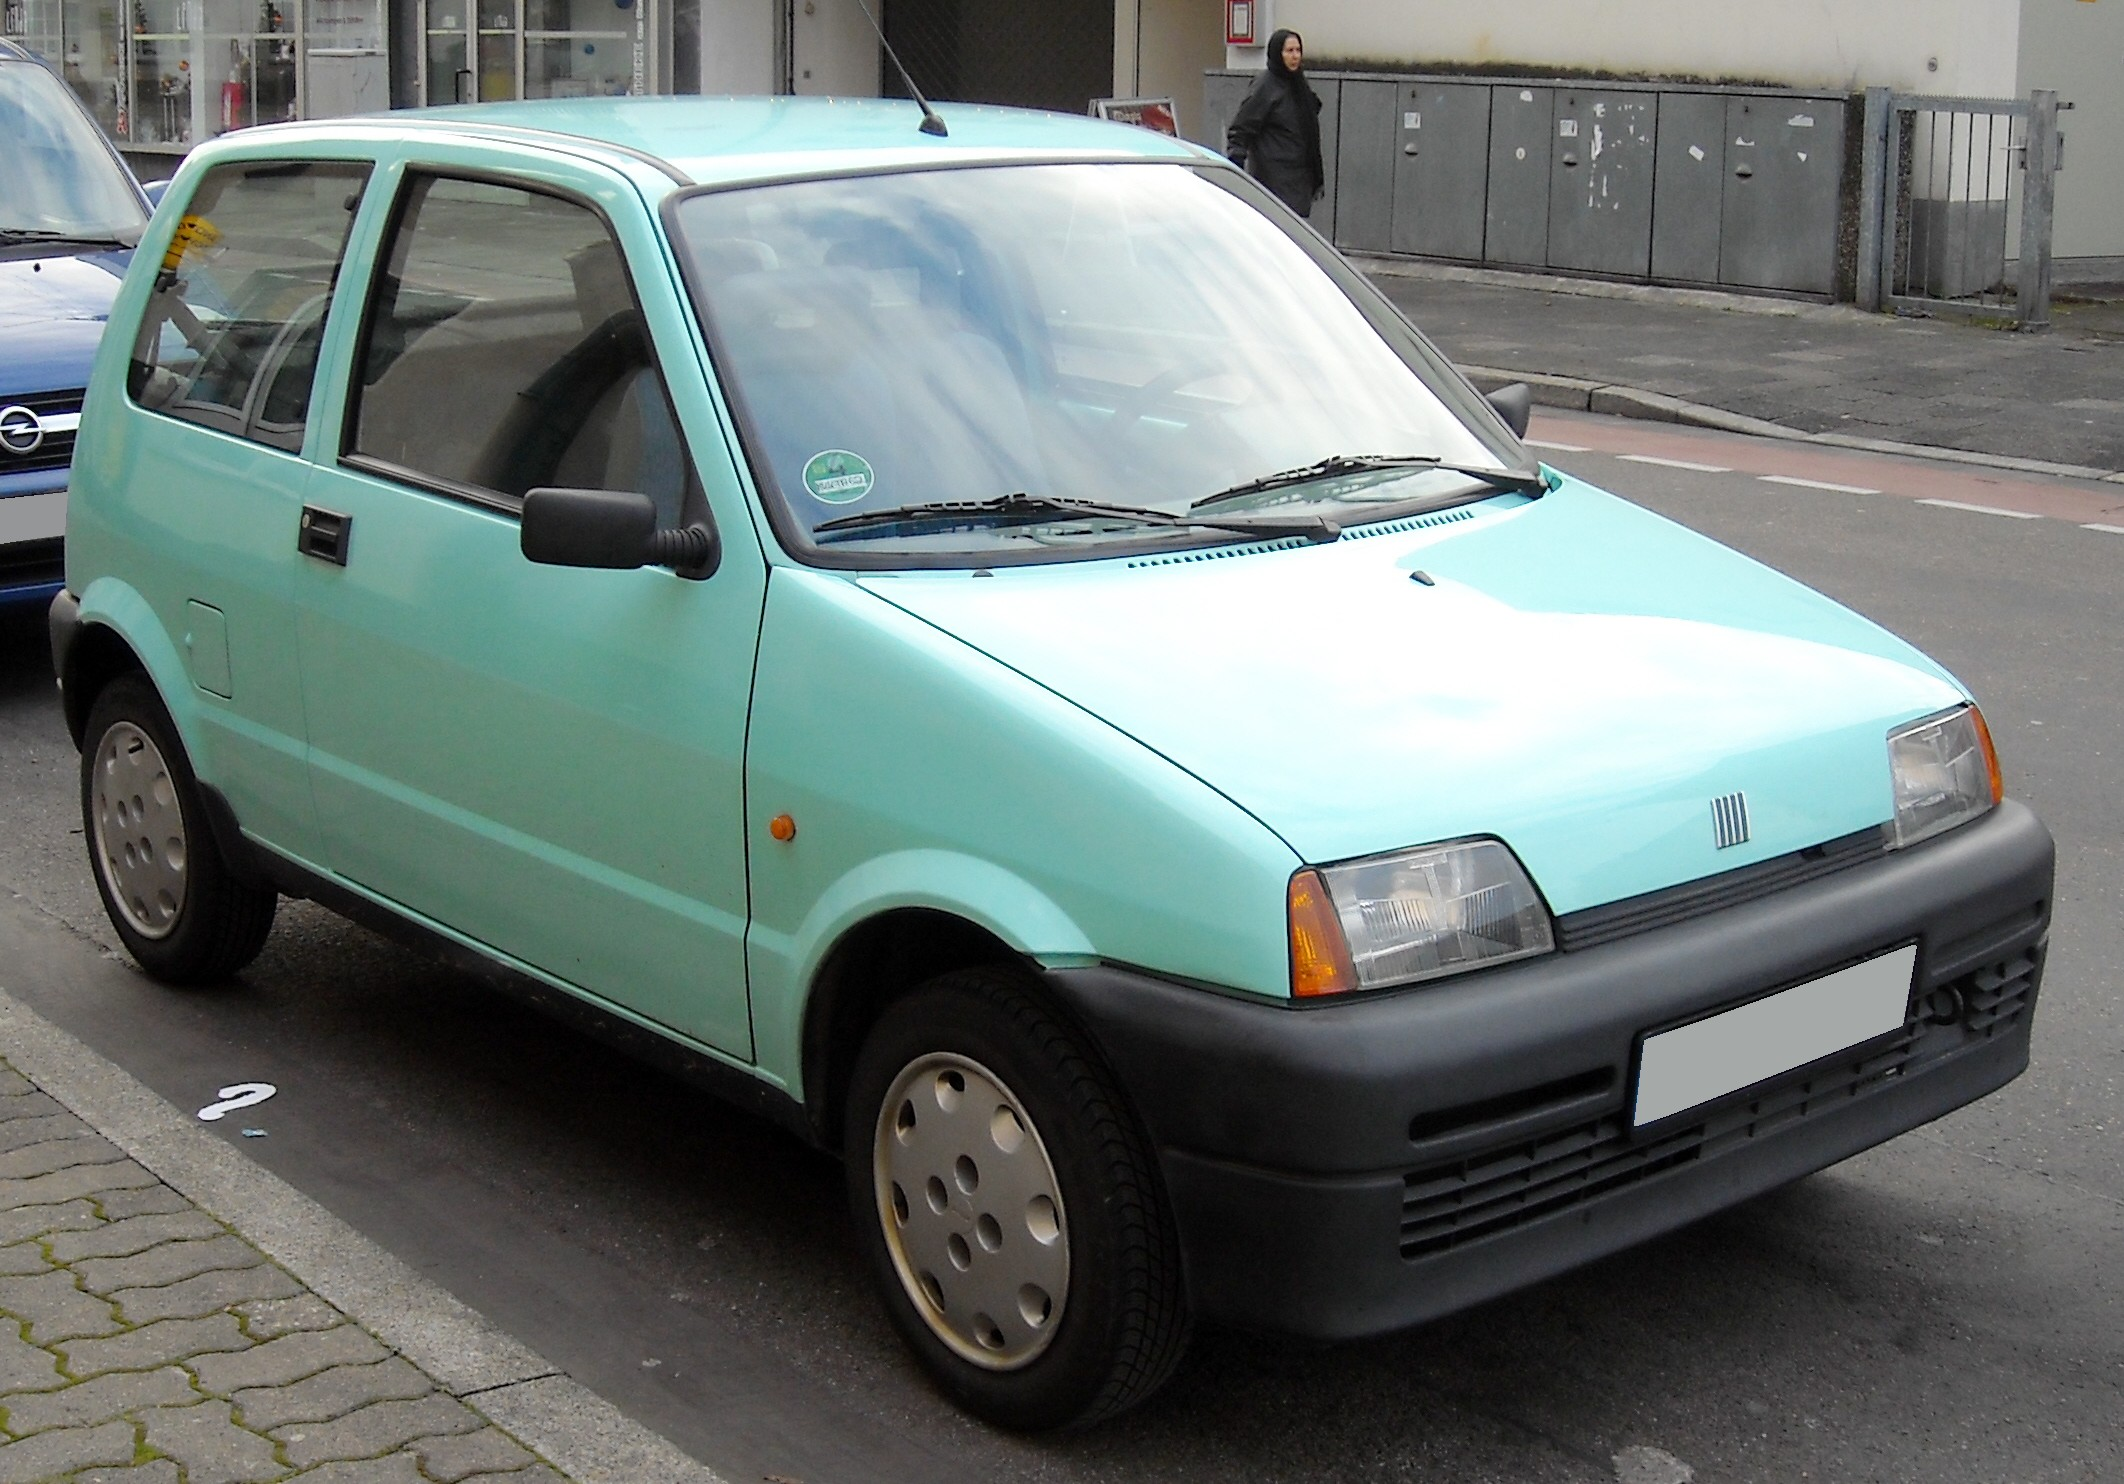 File:Fiat Cinquecento front 20081127.jpg - Wikipedia, the free ...